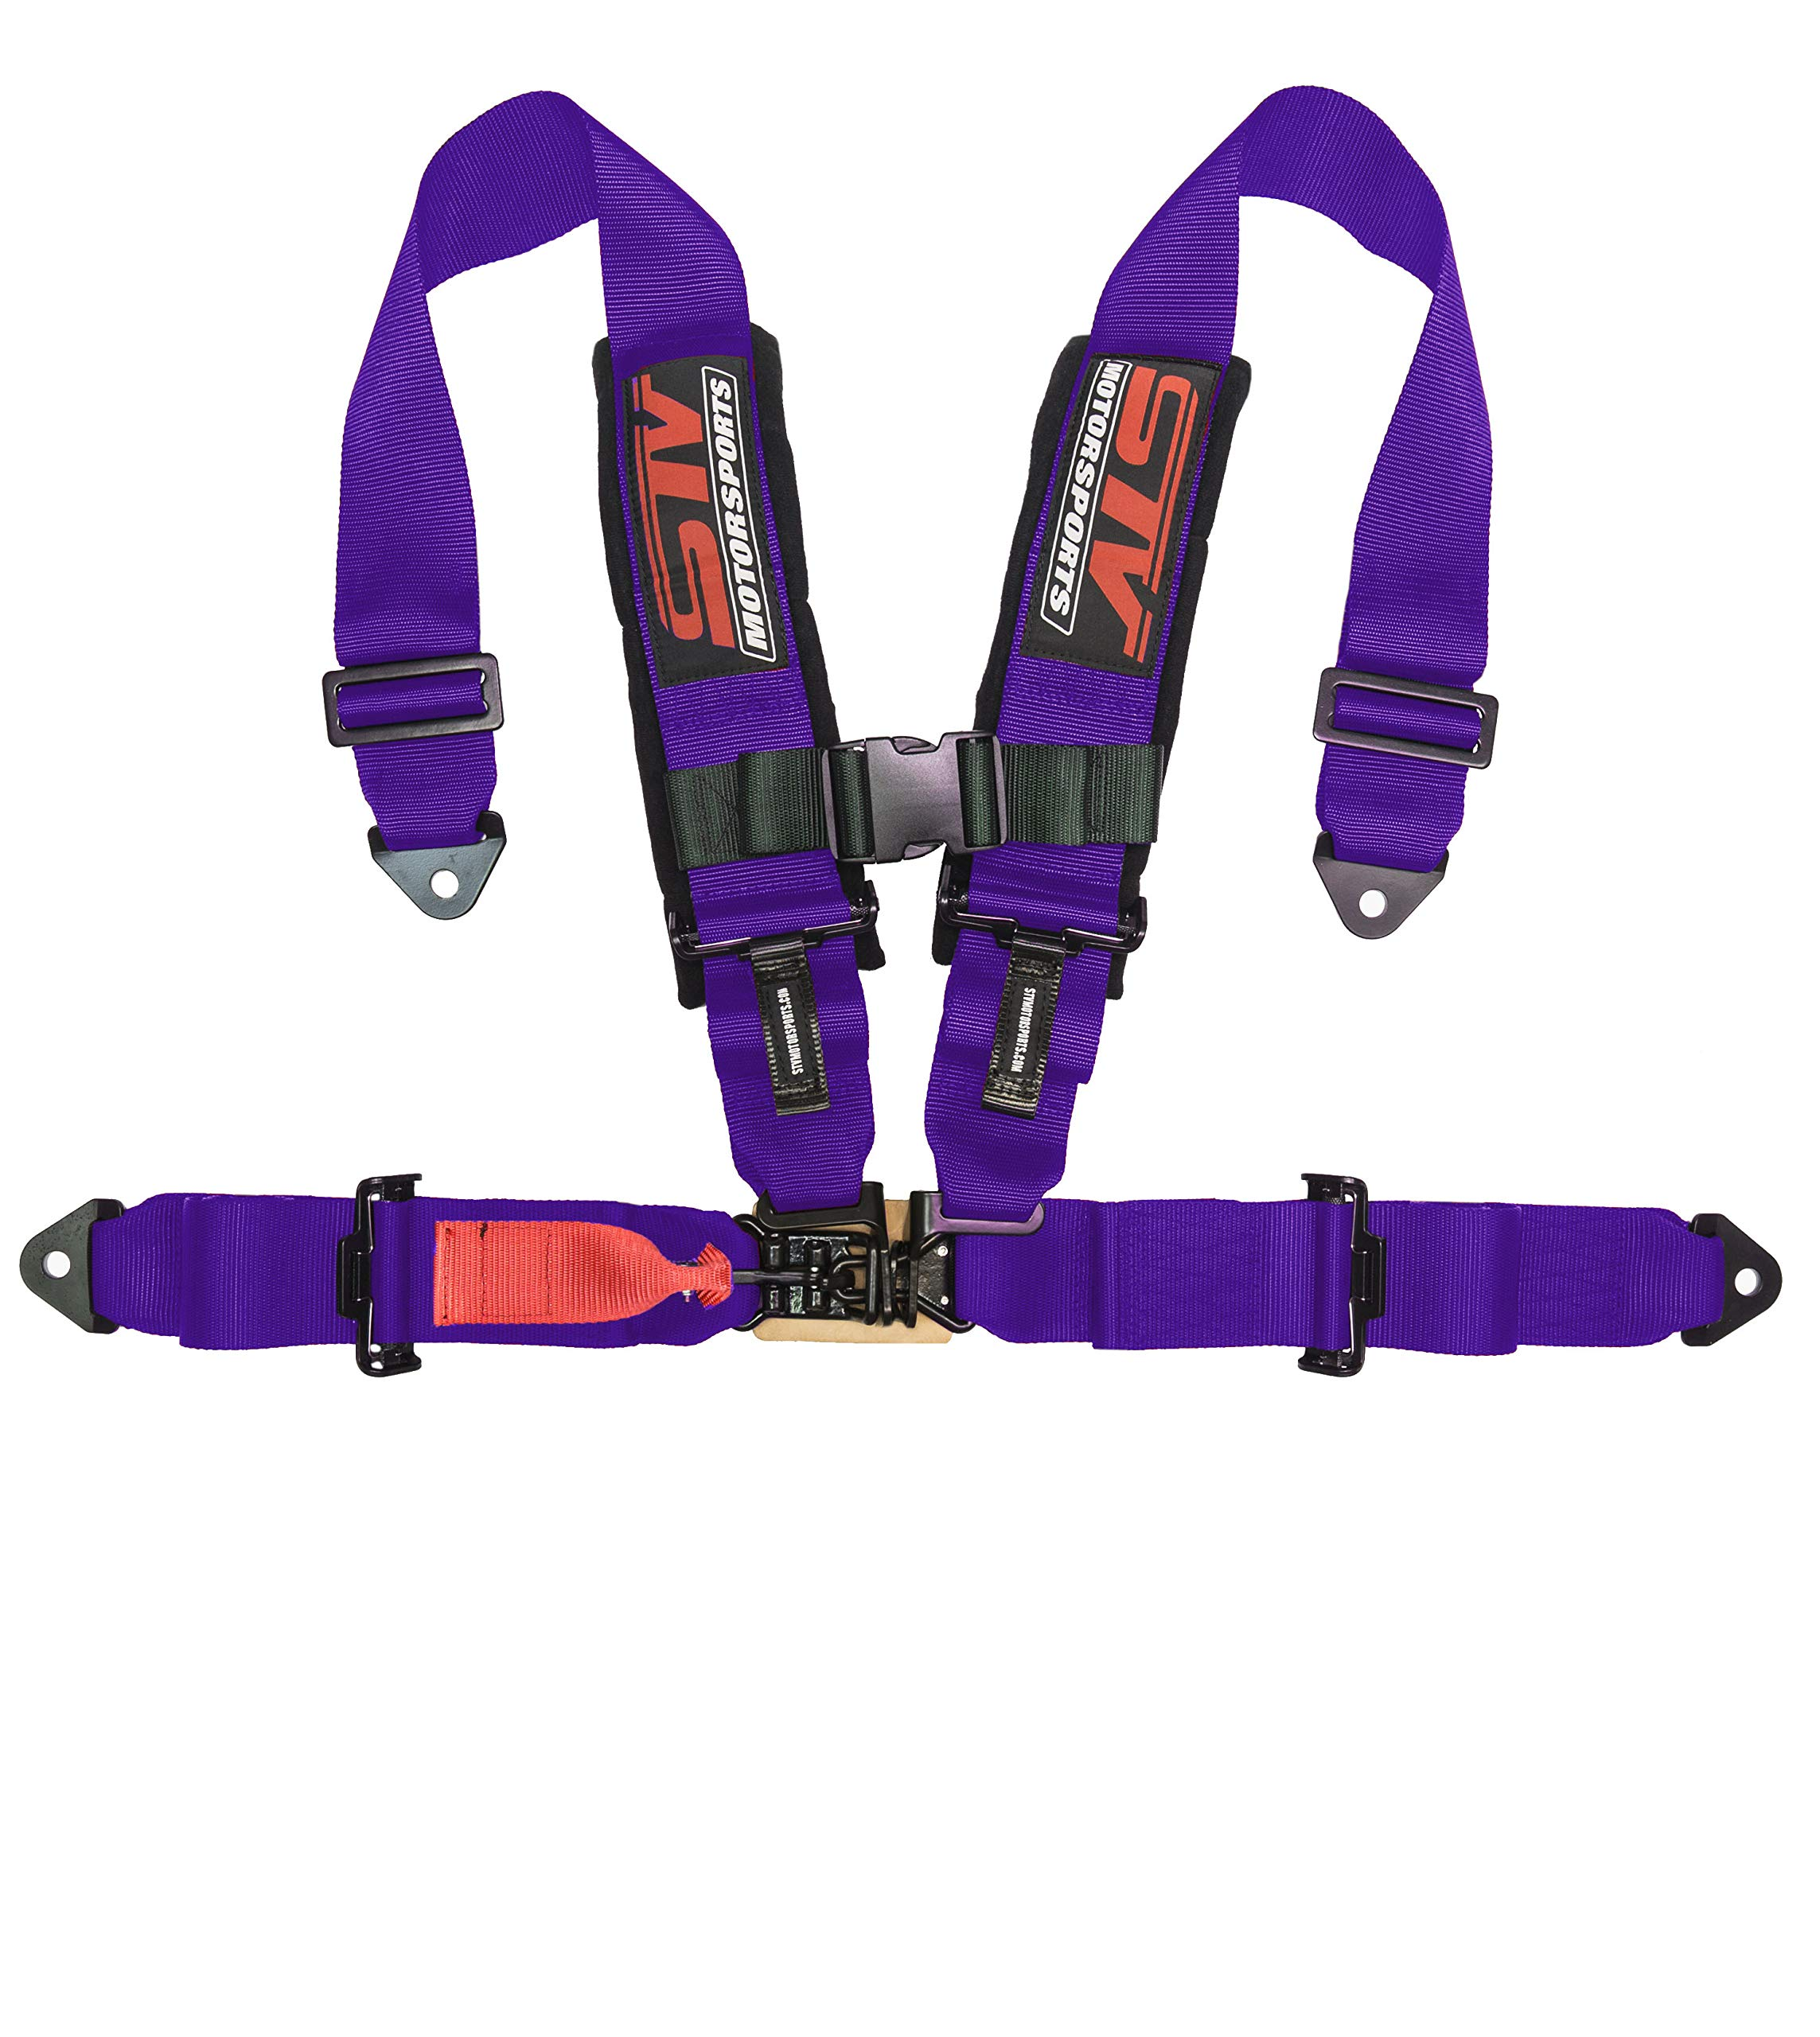 """STVMotorsports 4 Point Harness - 2"""" Pads - Universal V-Type - Bolt in - Latch and Link Quick Release - for Off-Road, UTV, Trucks, Side by Side (Single) (Purple)"""